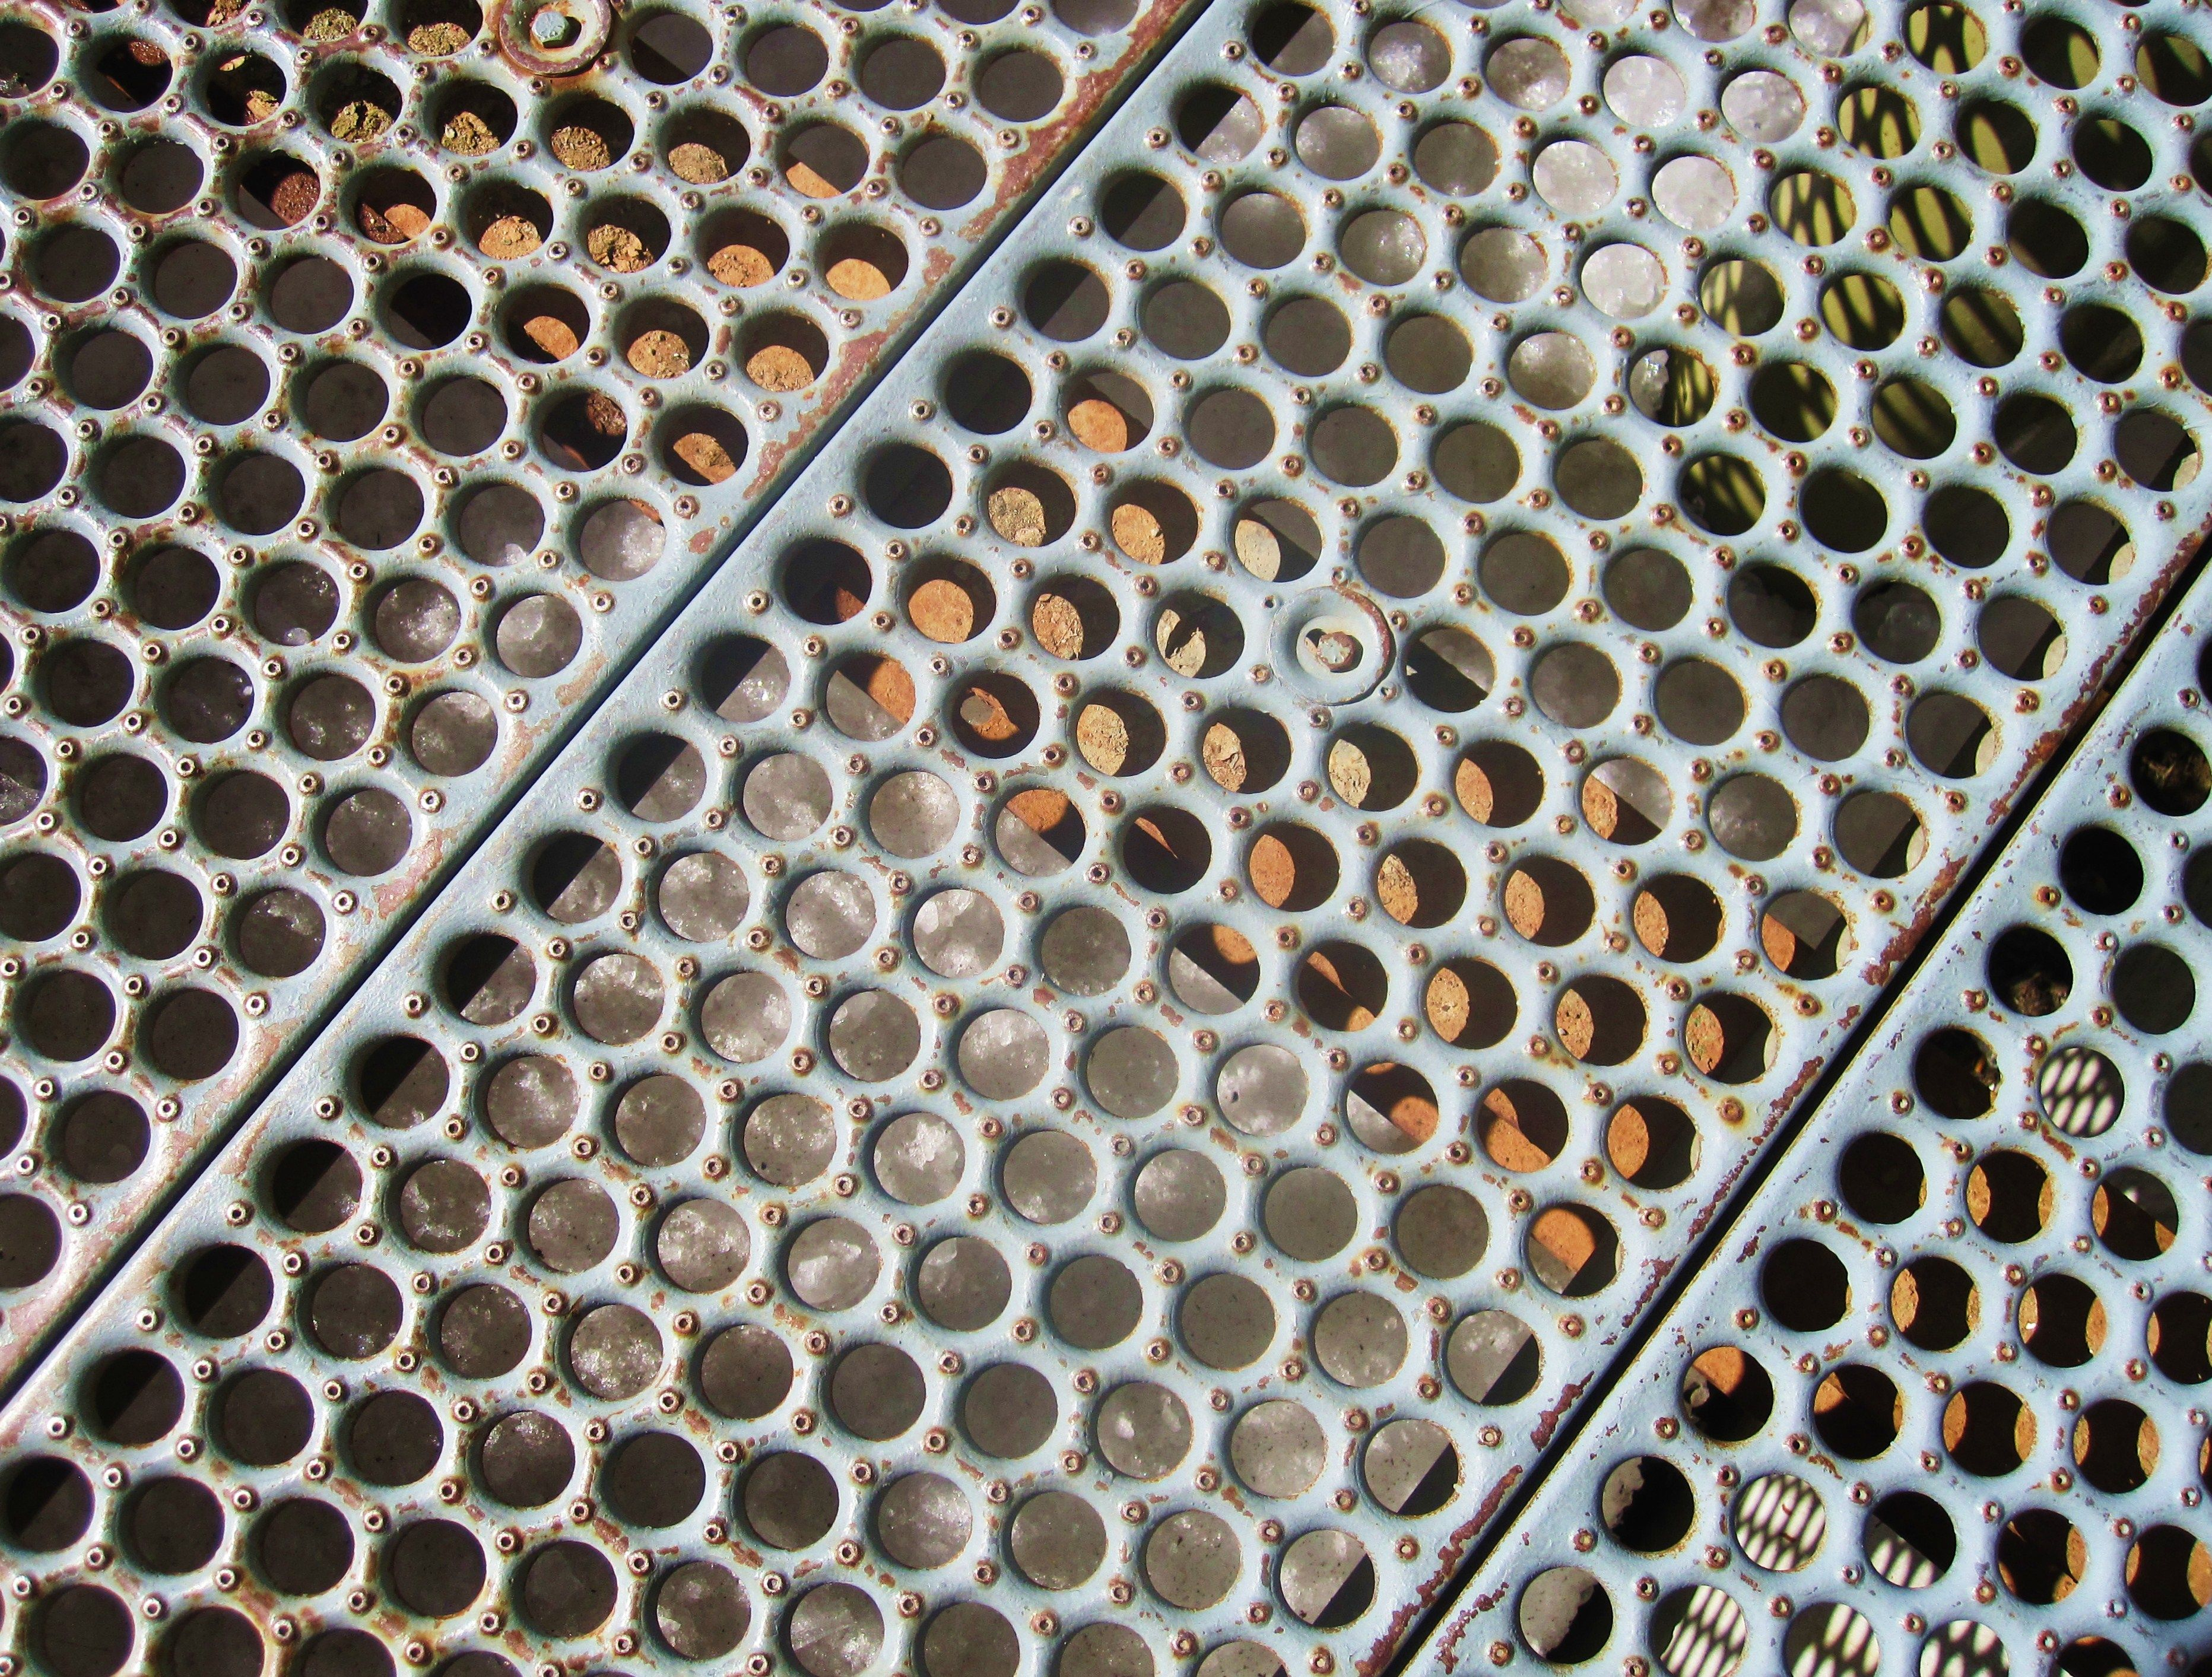 Decorative Metal Grates Dwell Images Of Steel Grating For Deck Google Search Decks And